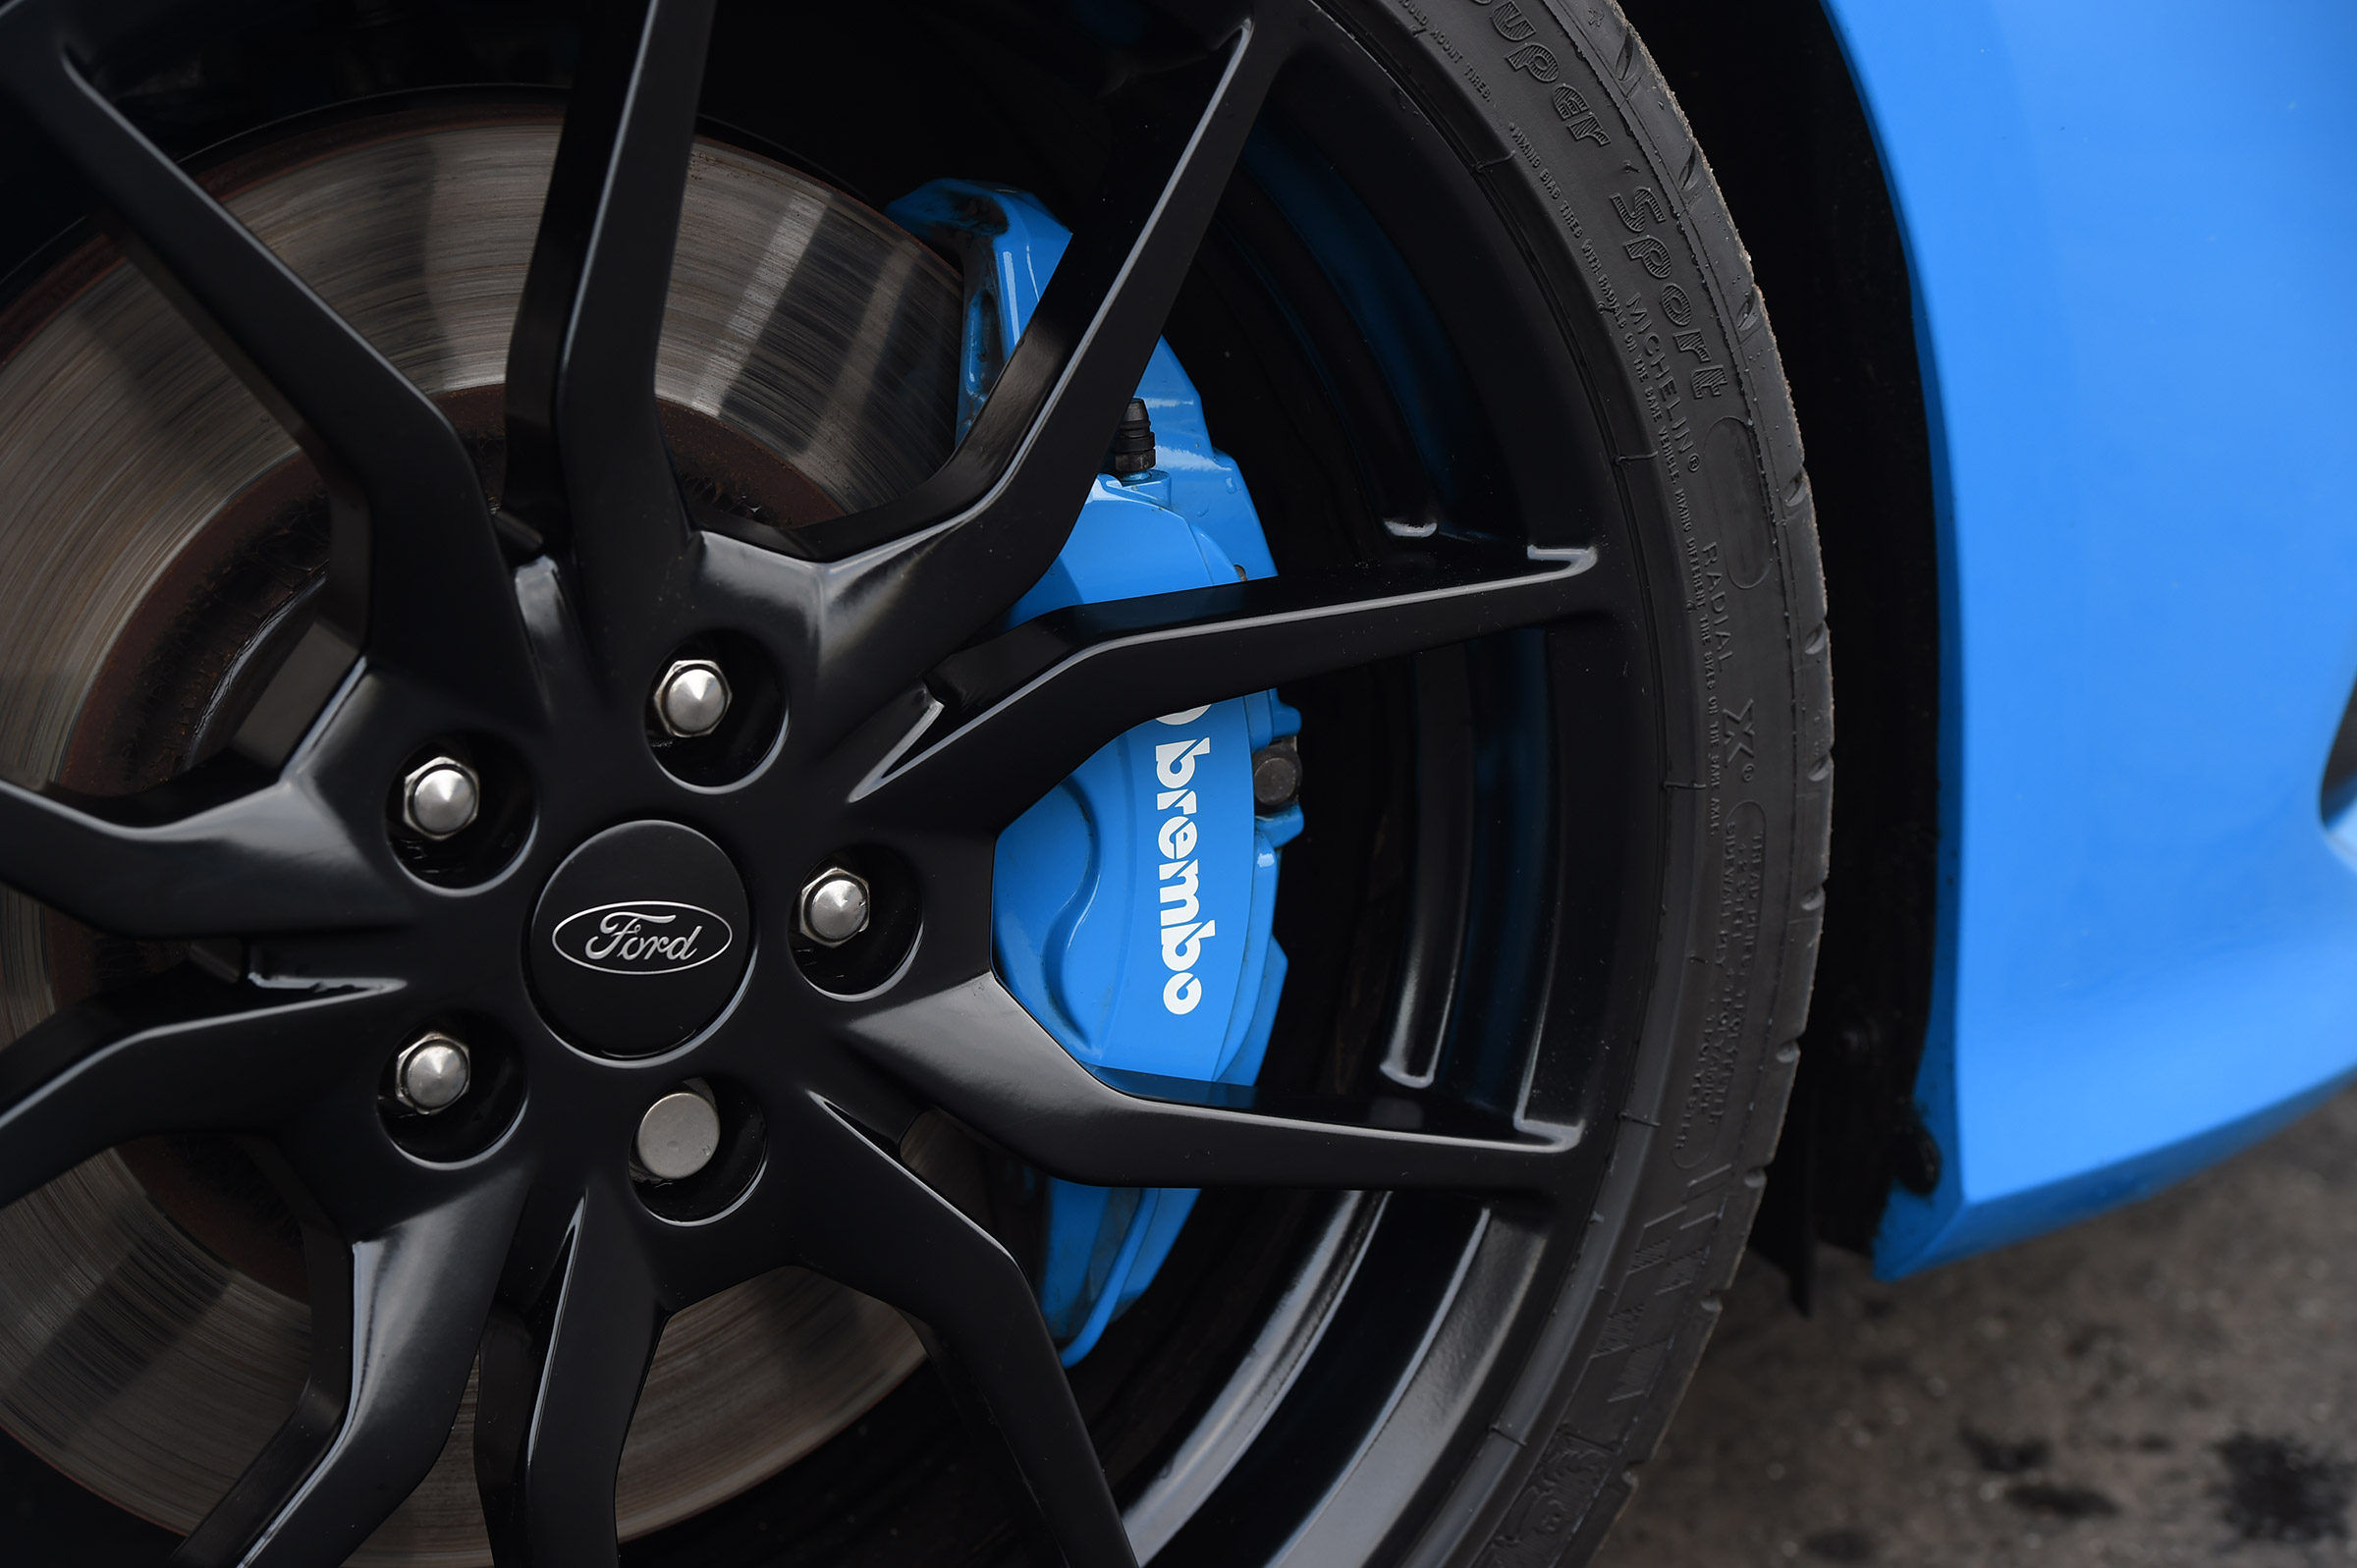 2017 Ford Focus RS Exterior Wheel Trim (View 8 of 23)